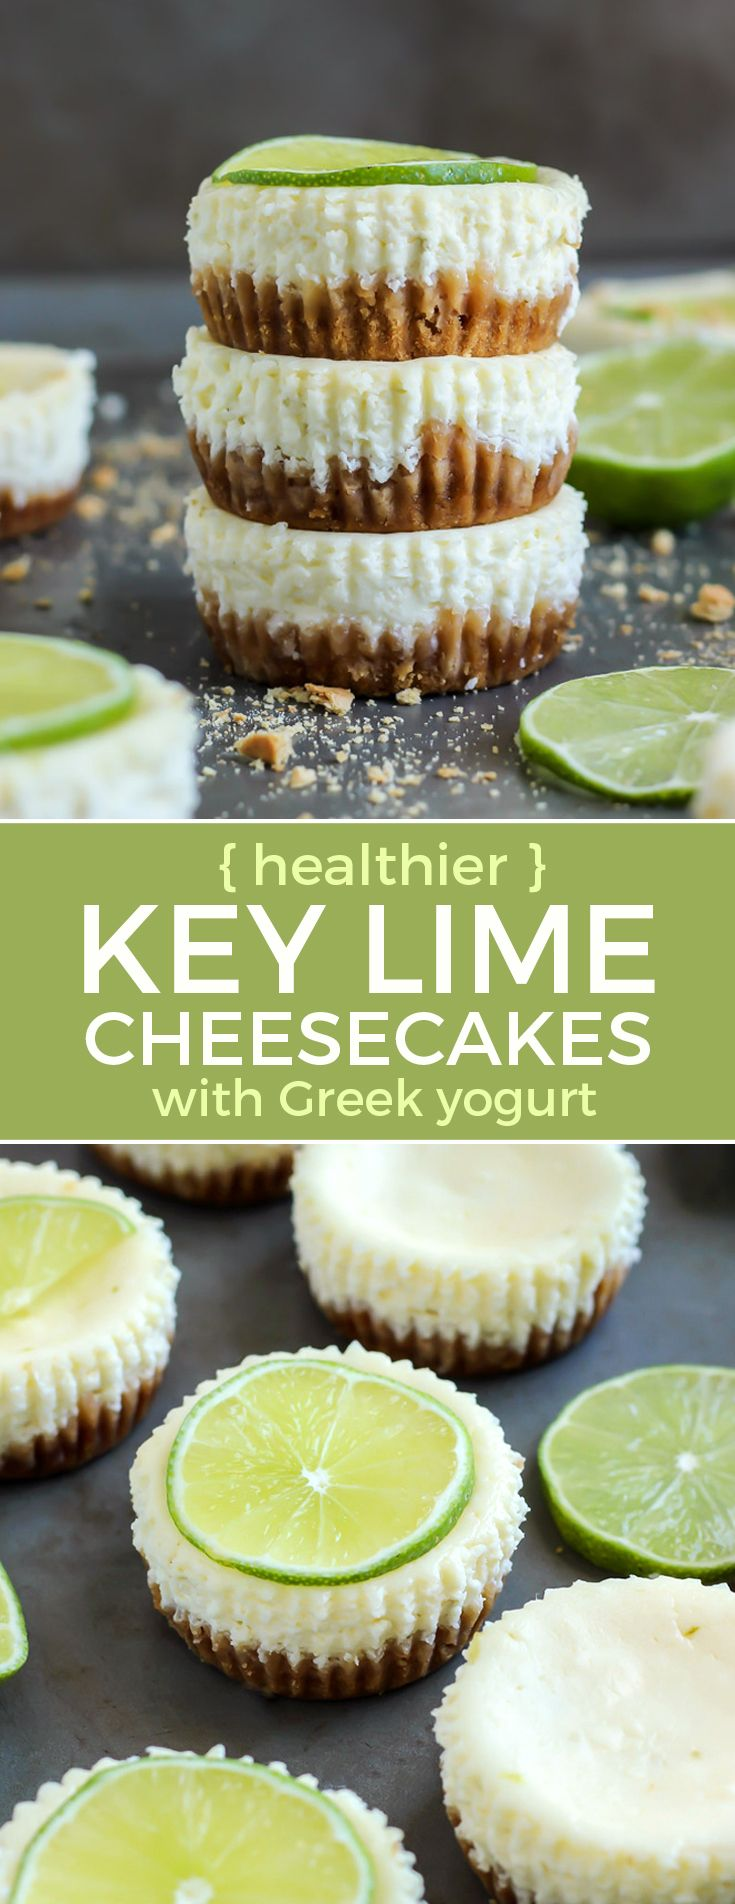 Healthier cheesecake recipe! Key Lime Cheesecake with Greek Yogurt. These are really easy